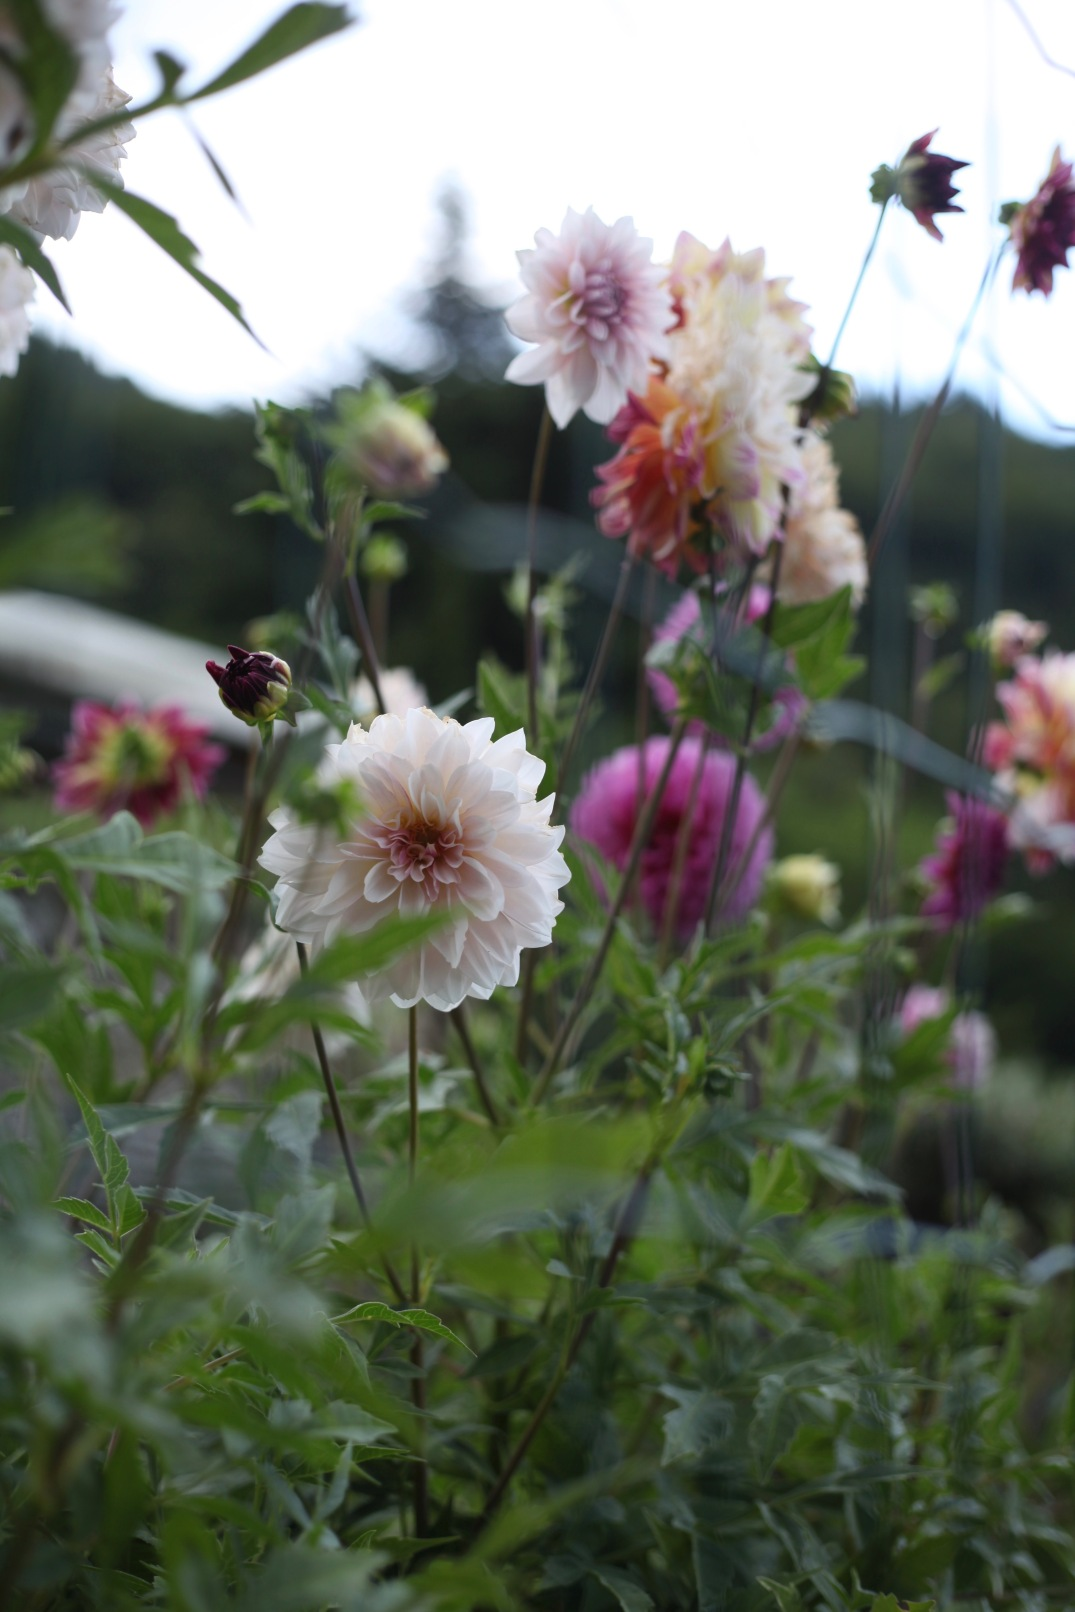 dahlias at an organic farm in the mountains above Lago di Garda, Italy